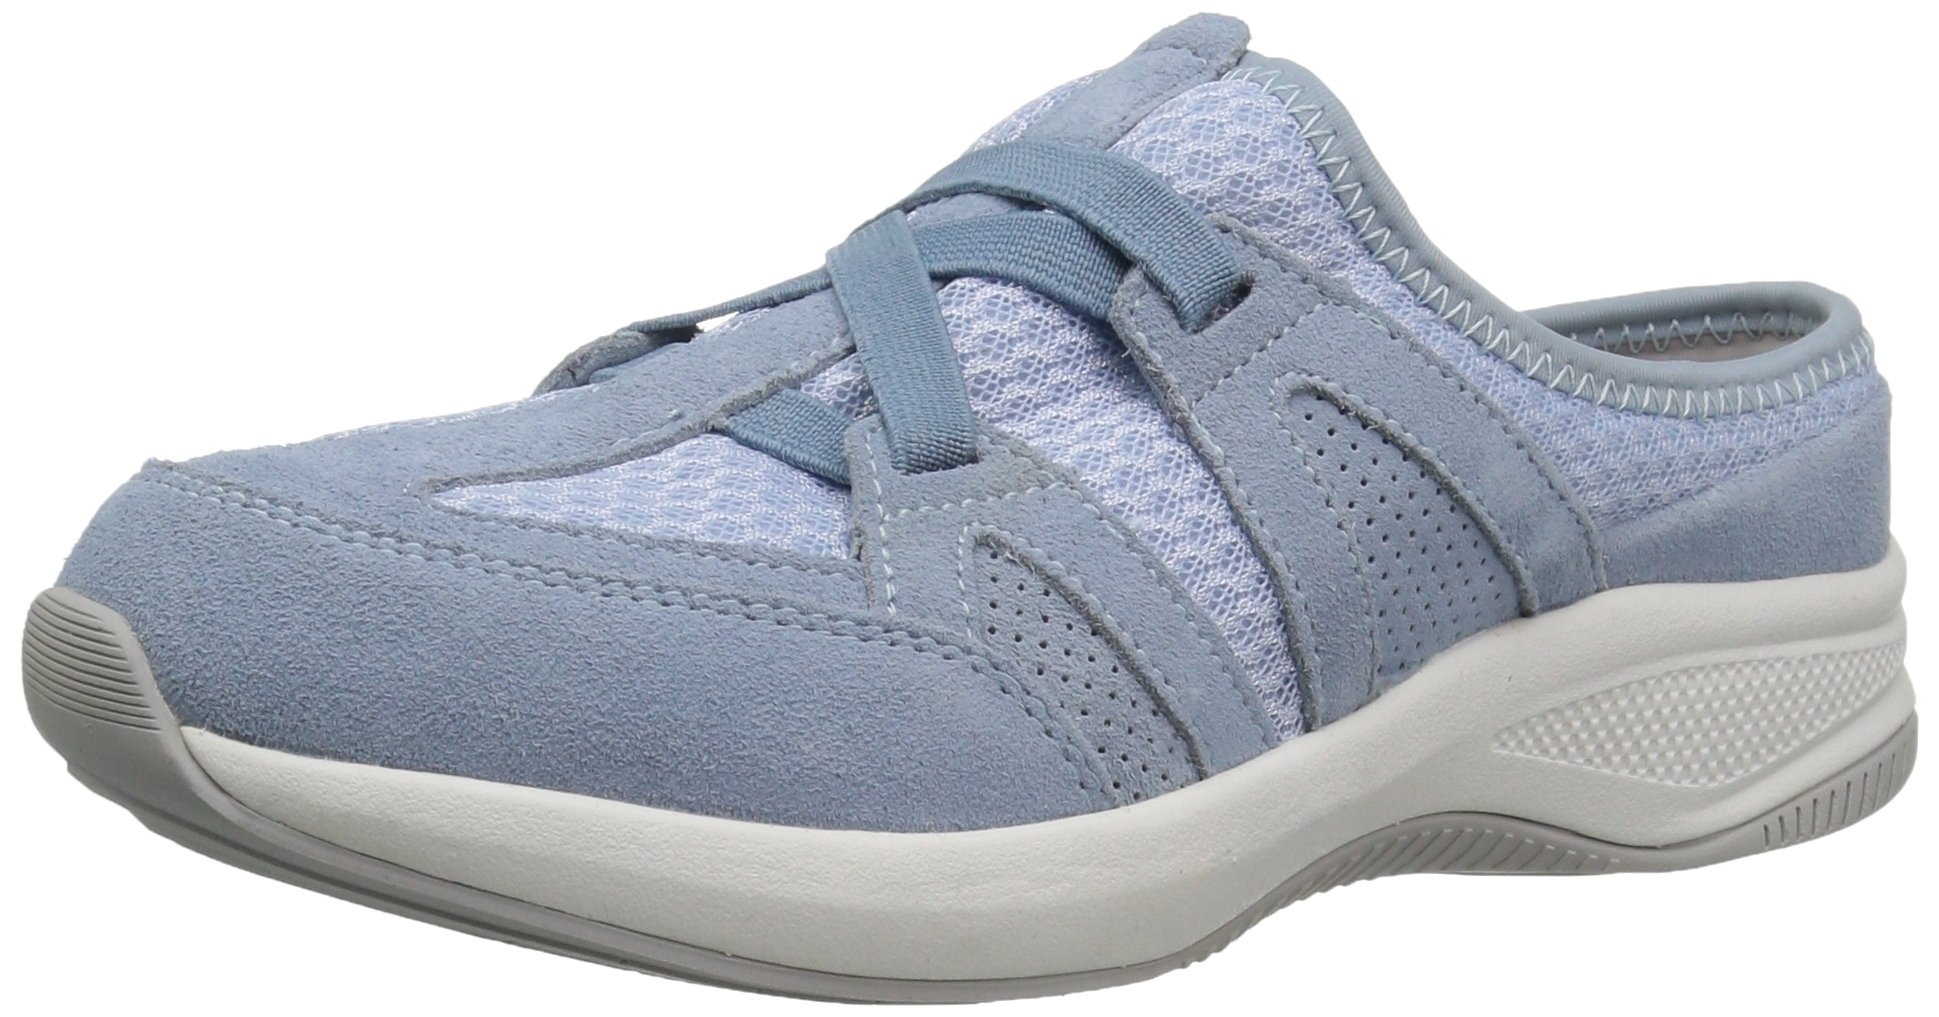 Easy Spirit Women's Tunein Mule, Blue, 7.5 W US